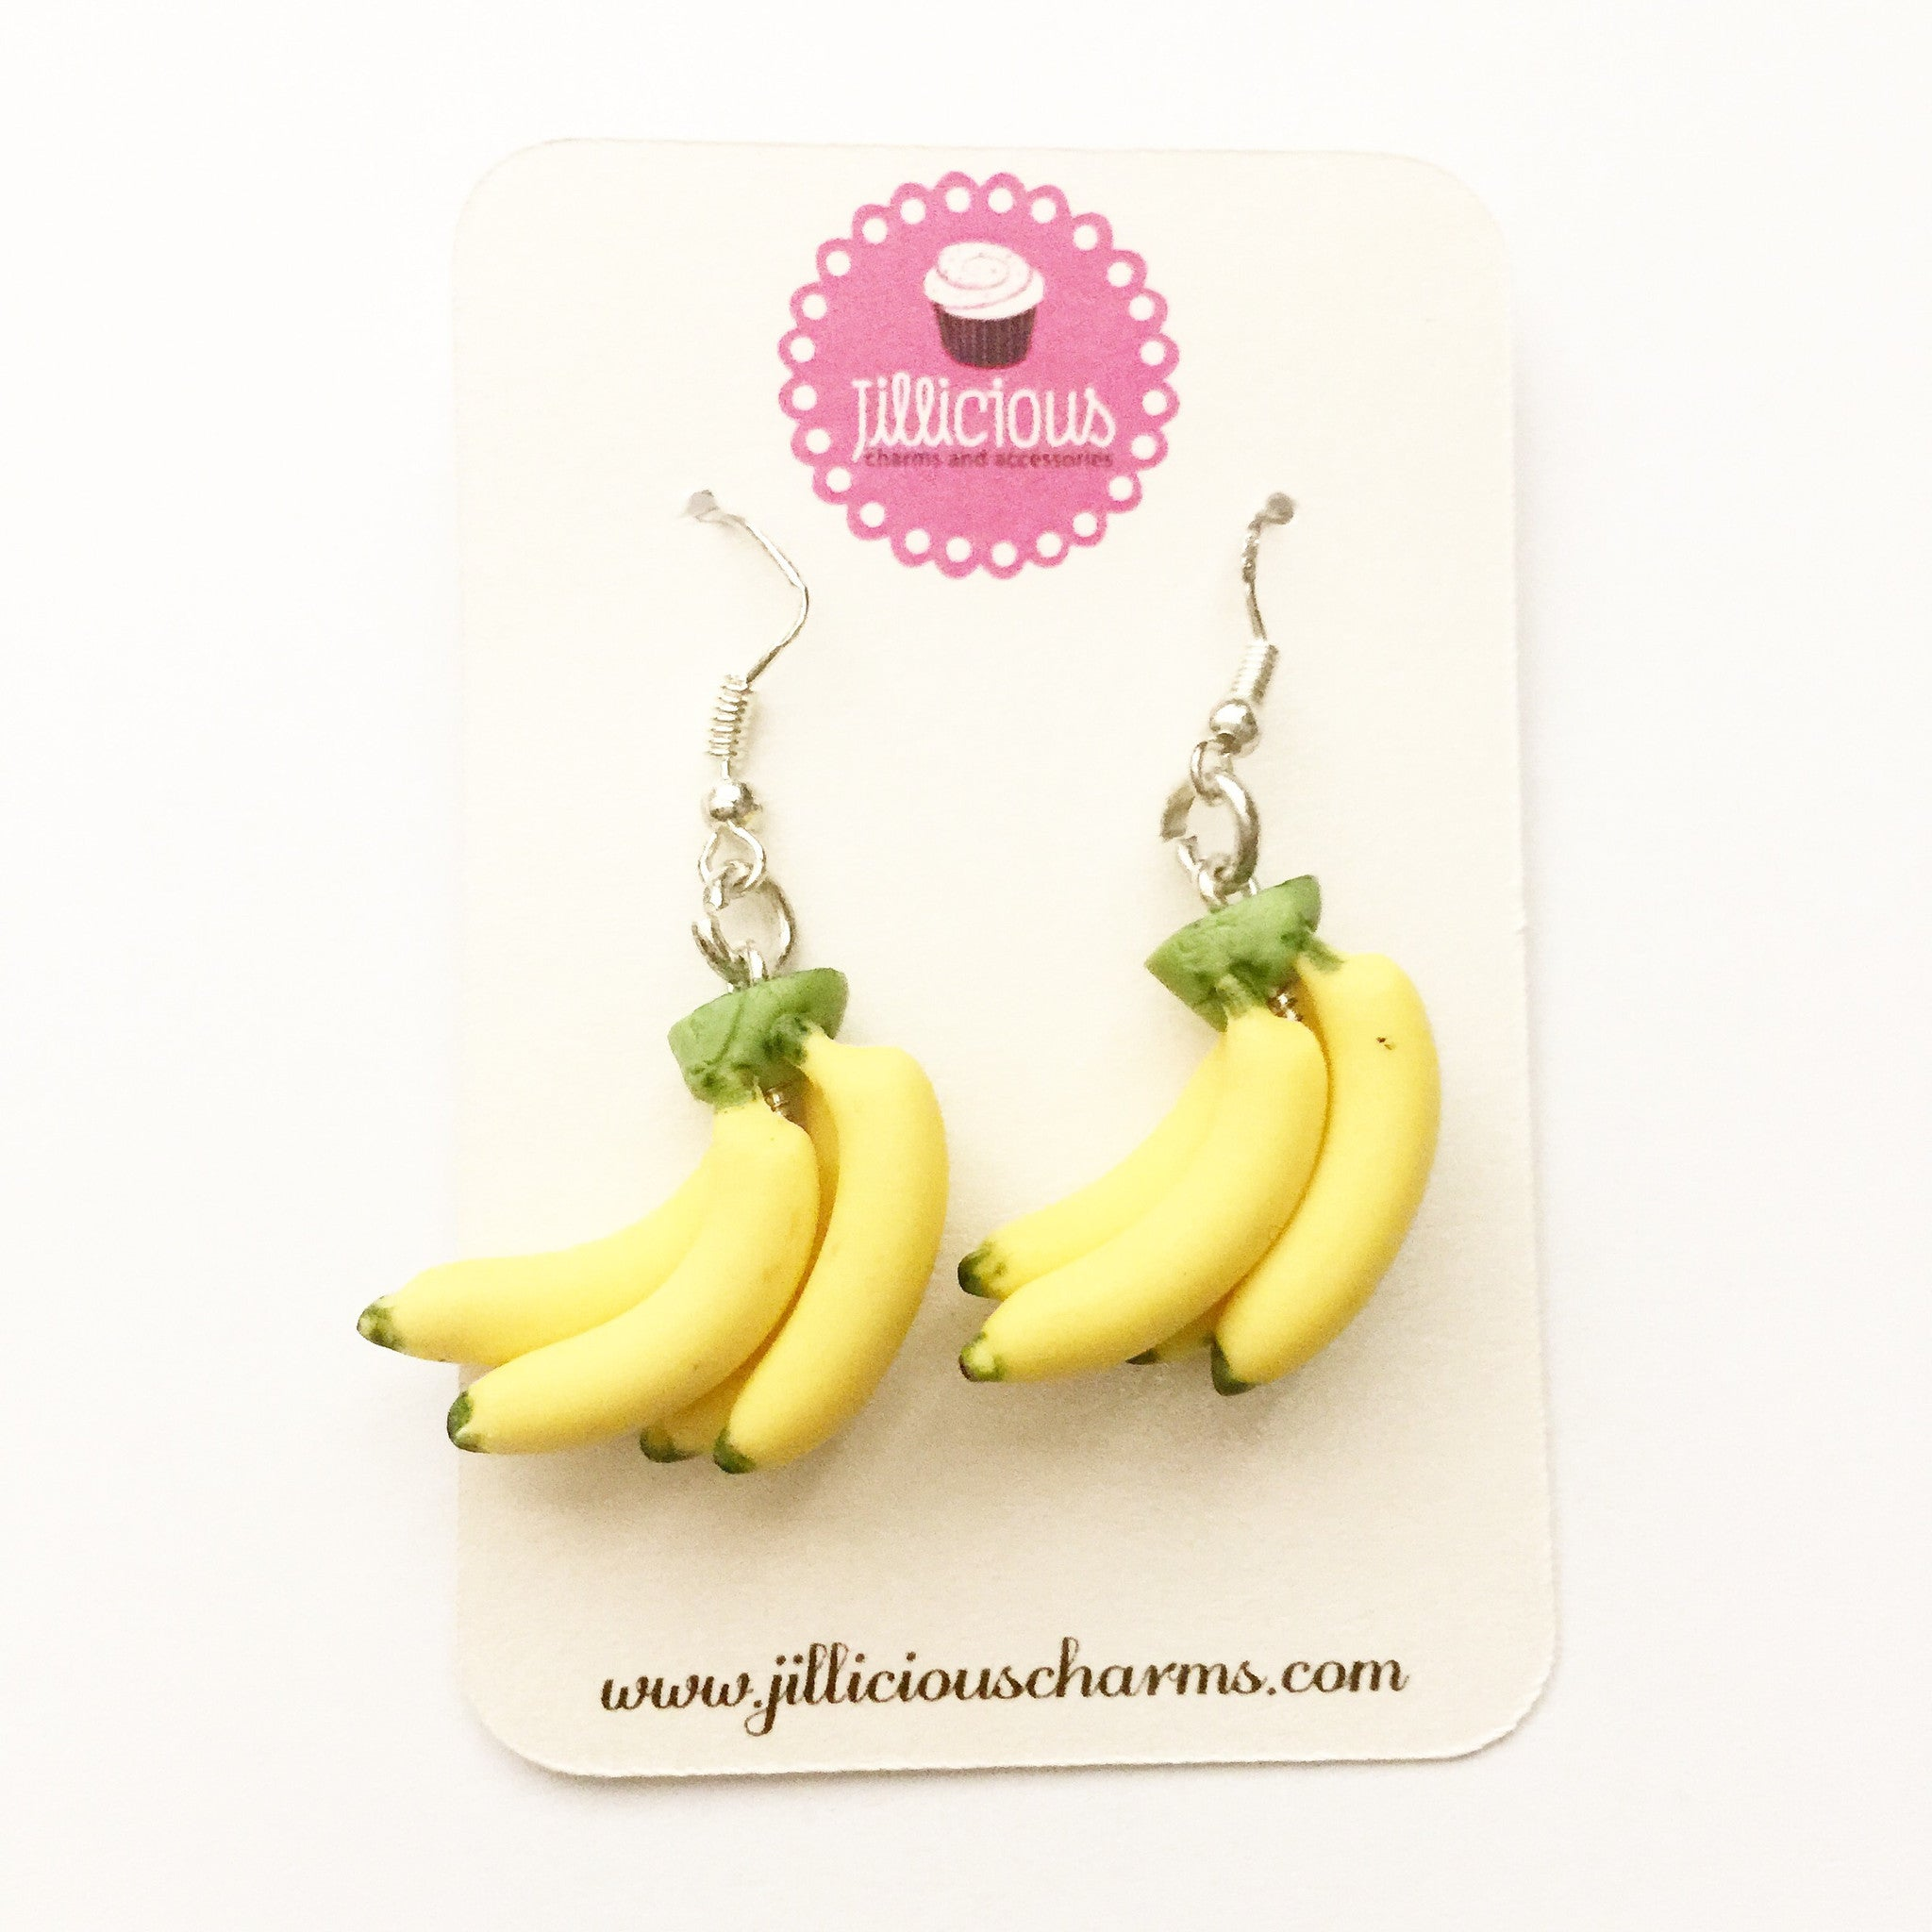 Banana Bunch Dangle Earrings - Jillicious charms and accessories - 4